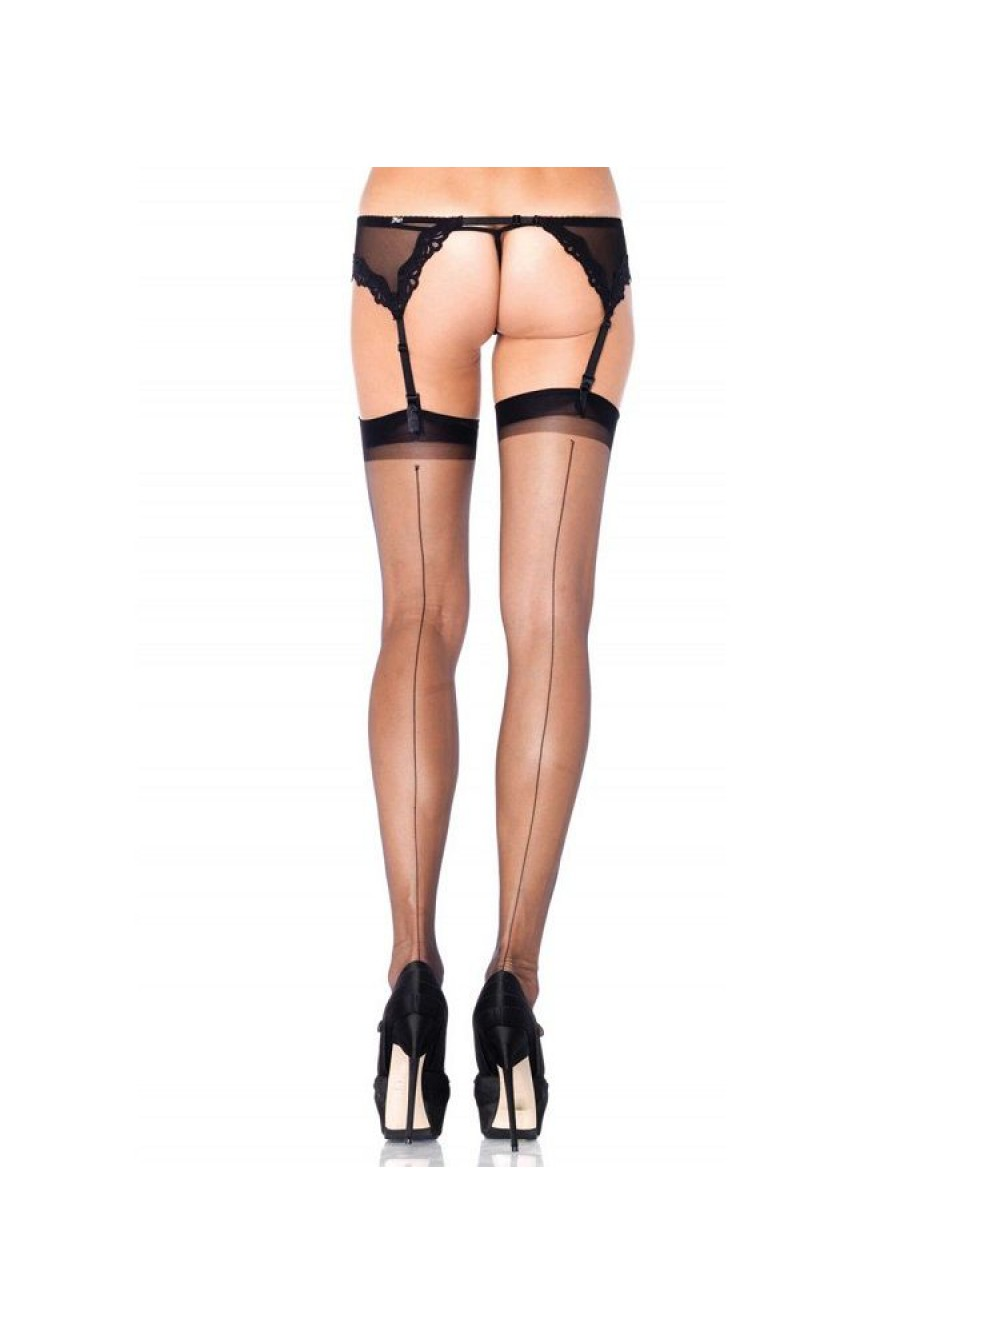 SPANDEX ULTRA SHEER BACK SEAM STOCKINGS